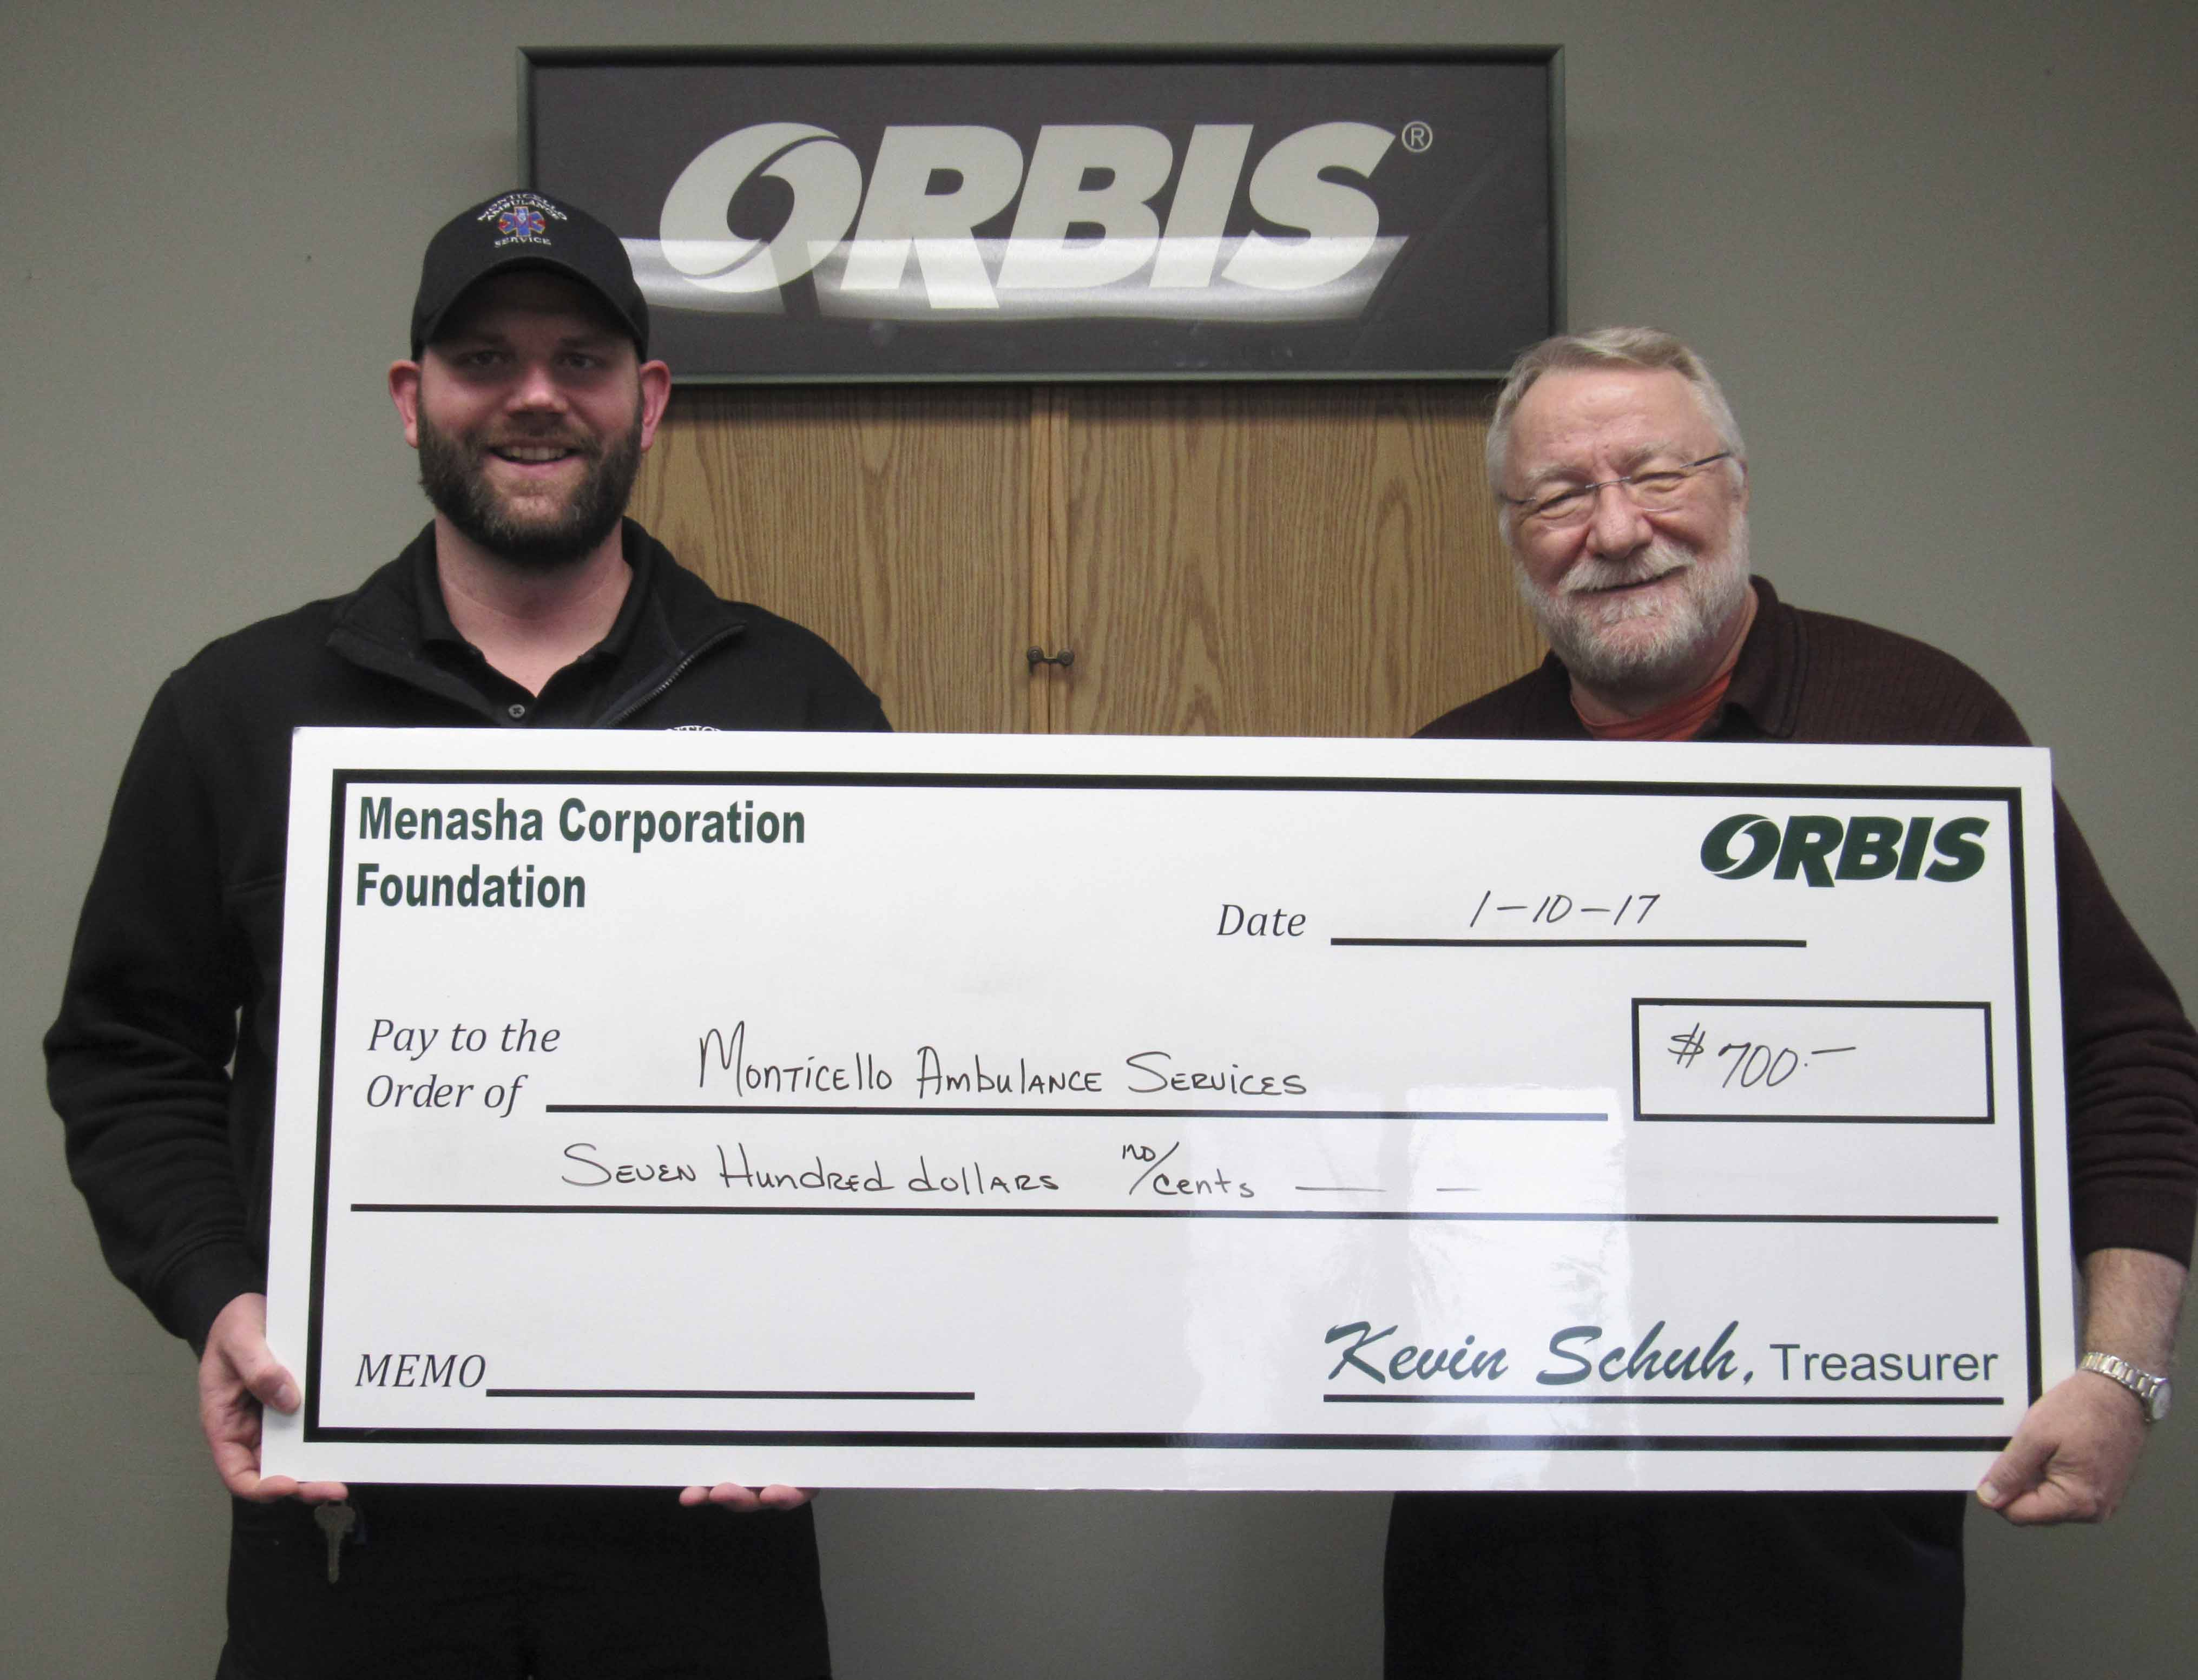 Orbis in Monticello recently donated funds to several community entities, including the Monticello Ambulance Service. Accepting on behalf of the ambulance department is Chris Sampson (left). Orbis, represented by Richard Talcott, donated $700. (Photos by Kim Brooks)